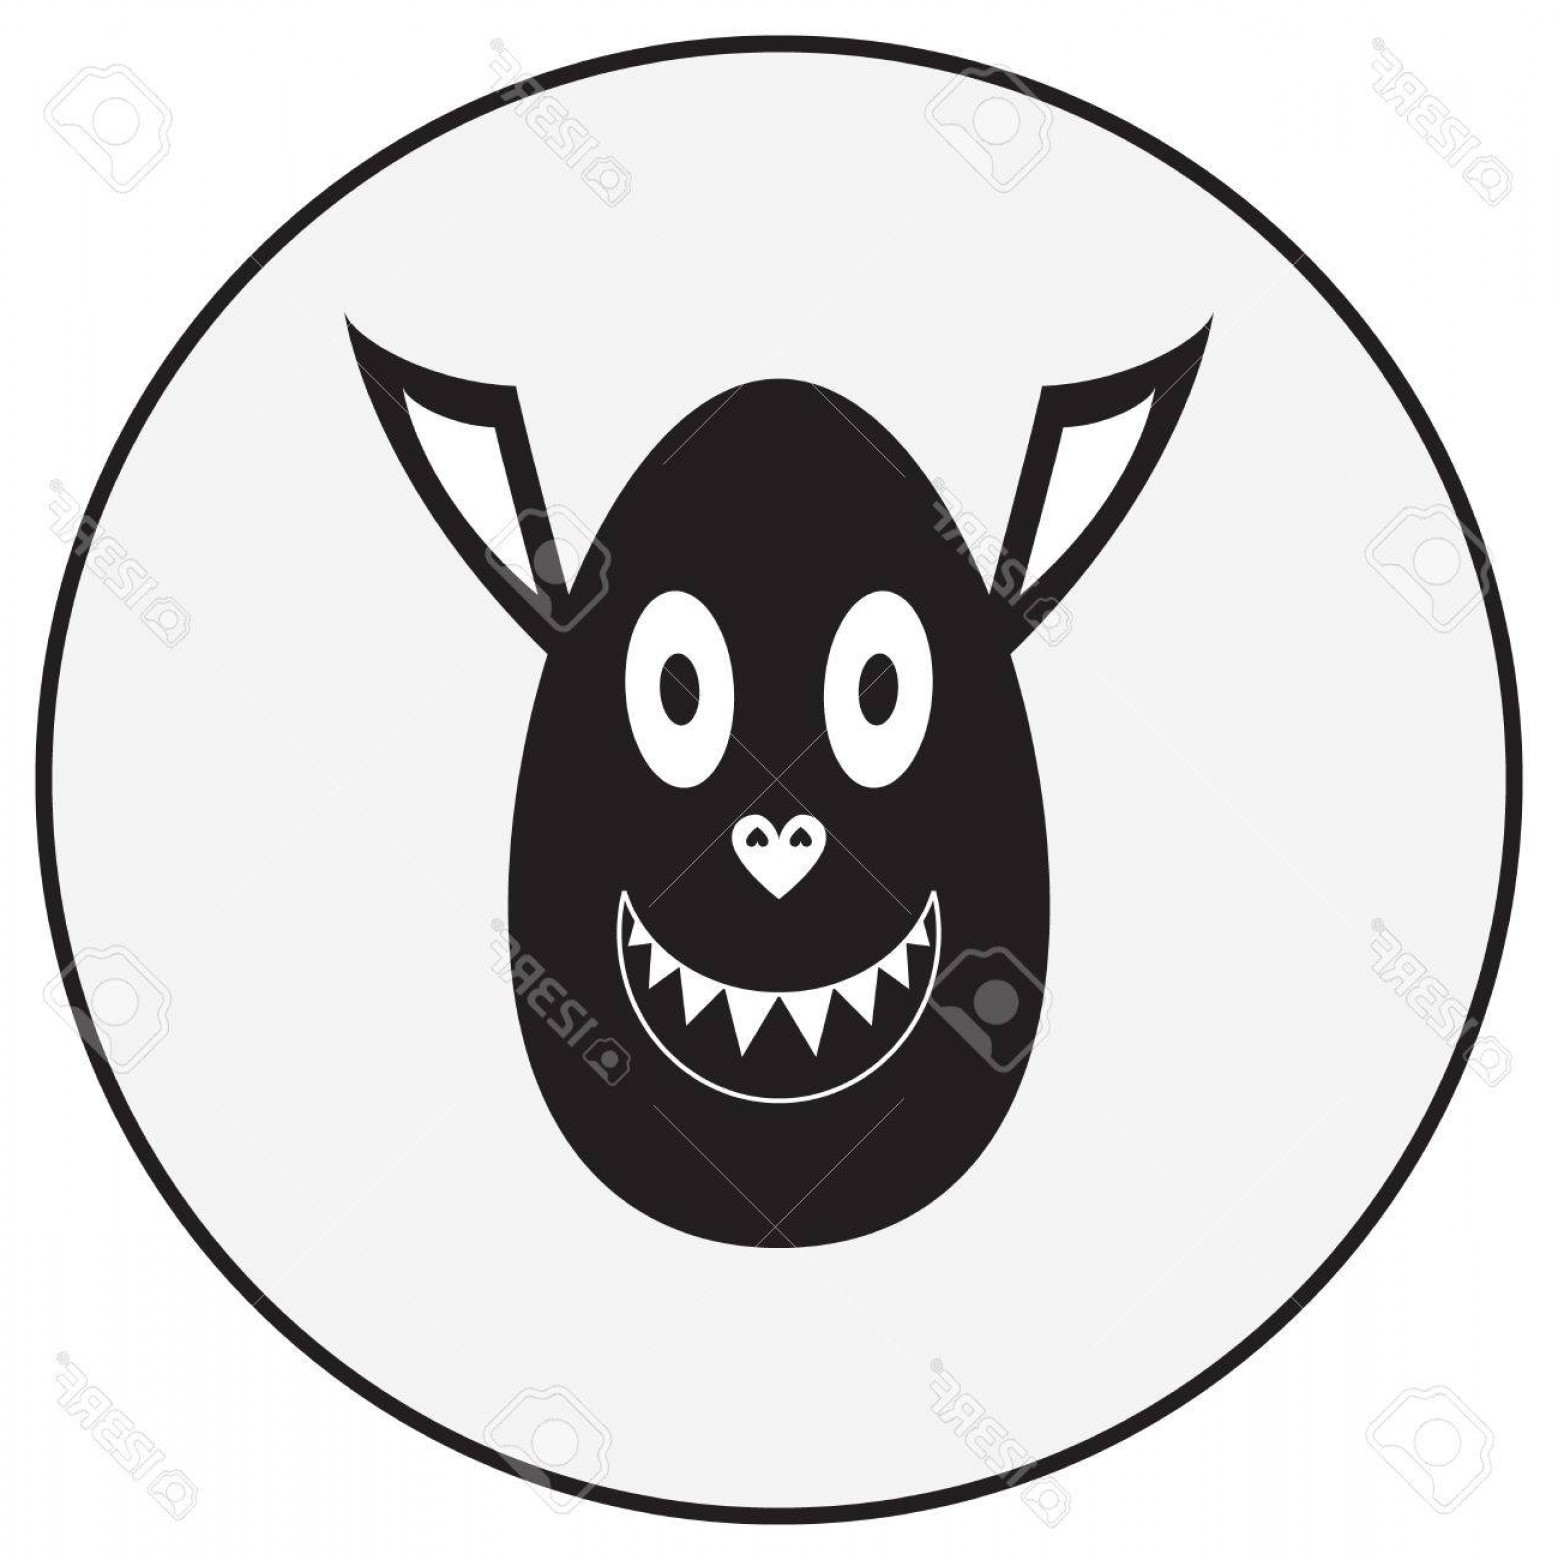 Vector Pig Nose: Photostock Vector Vector Monochrome Illustration Cute Monster Character With Ovoid Head Pig Nose And Vampire Ears